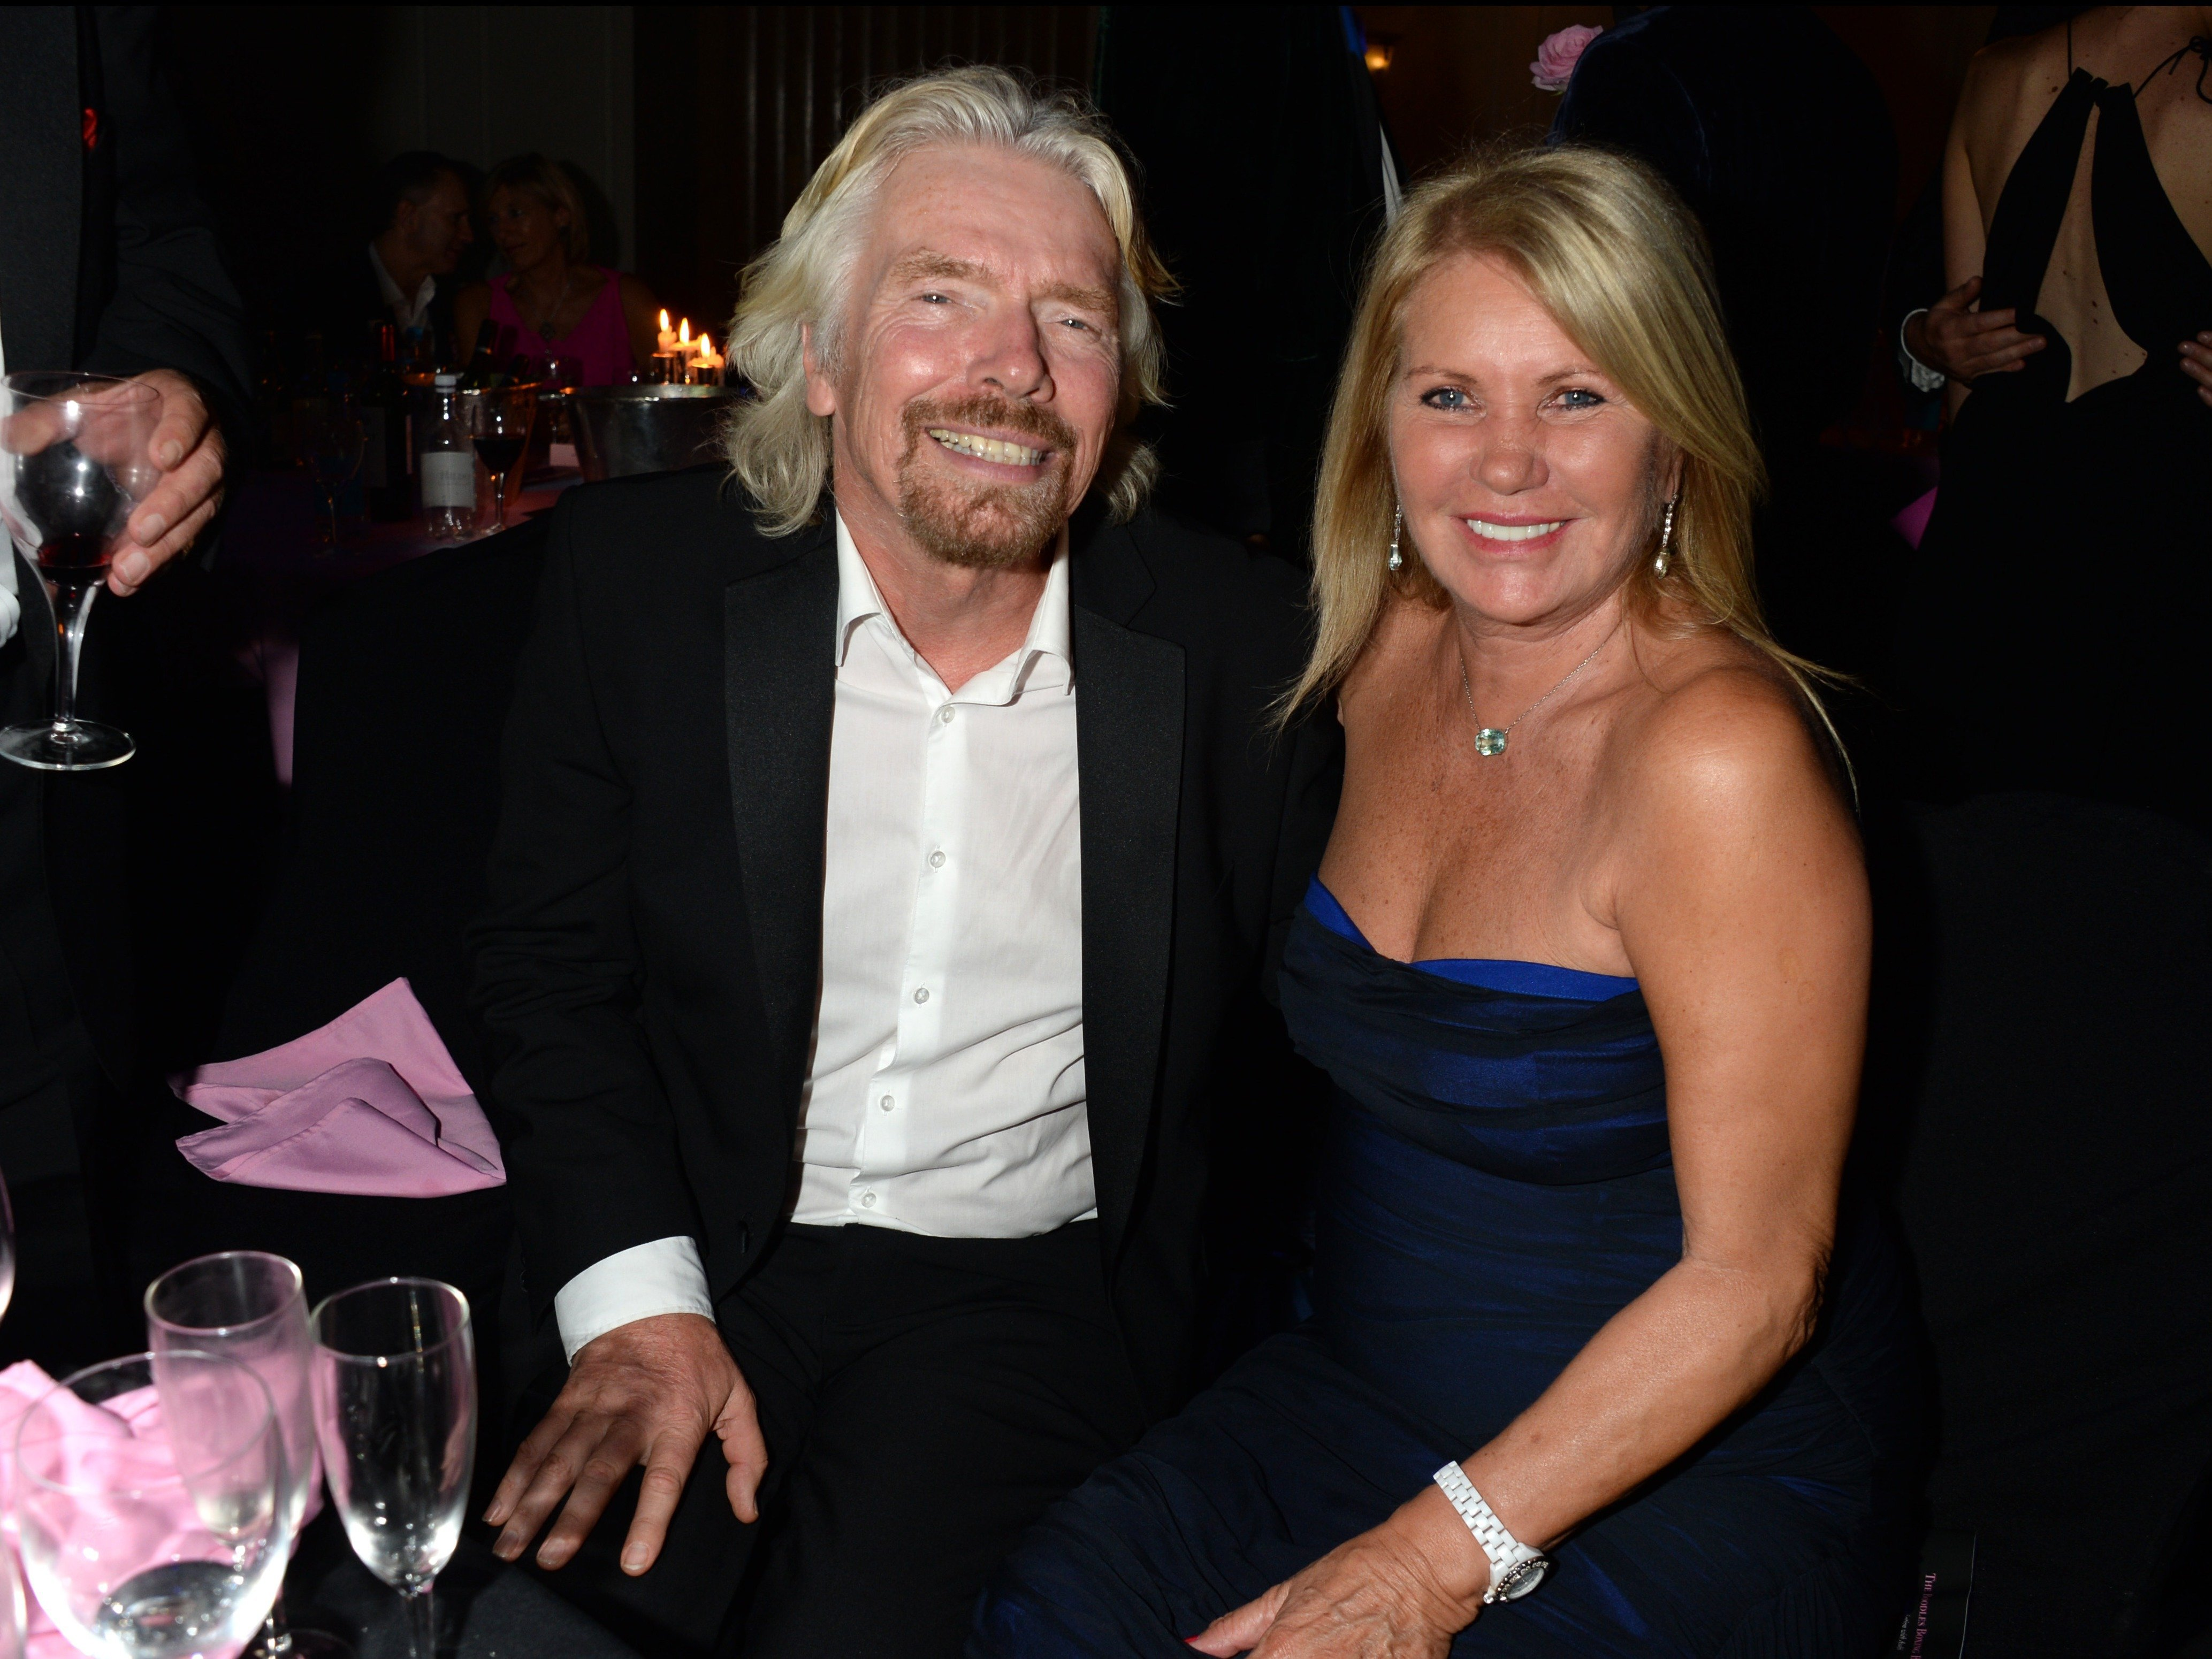 Pictures Of Richard Branson